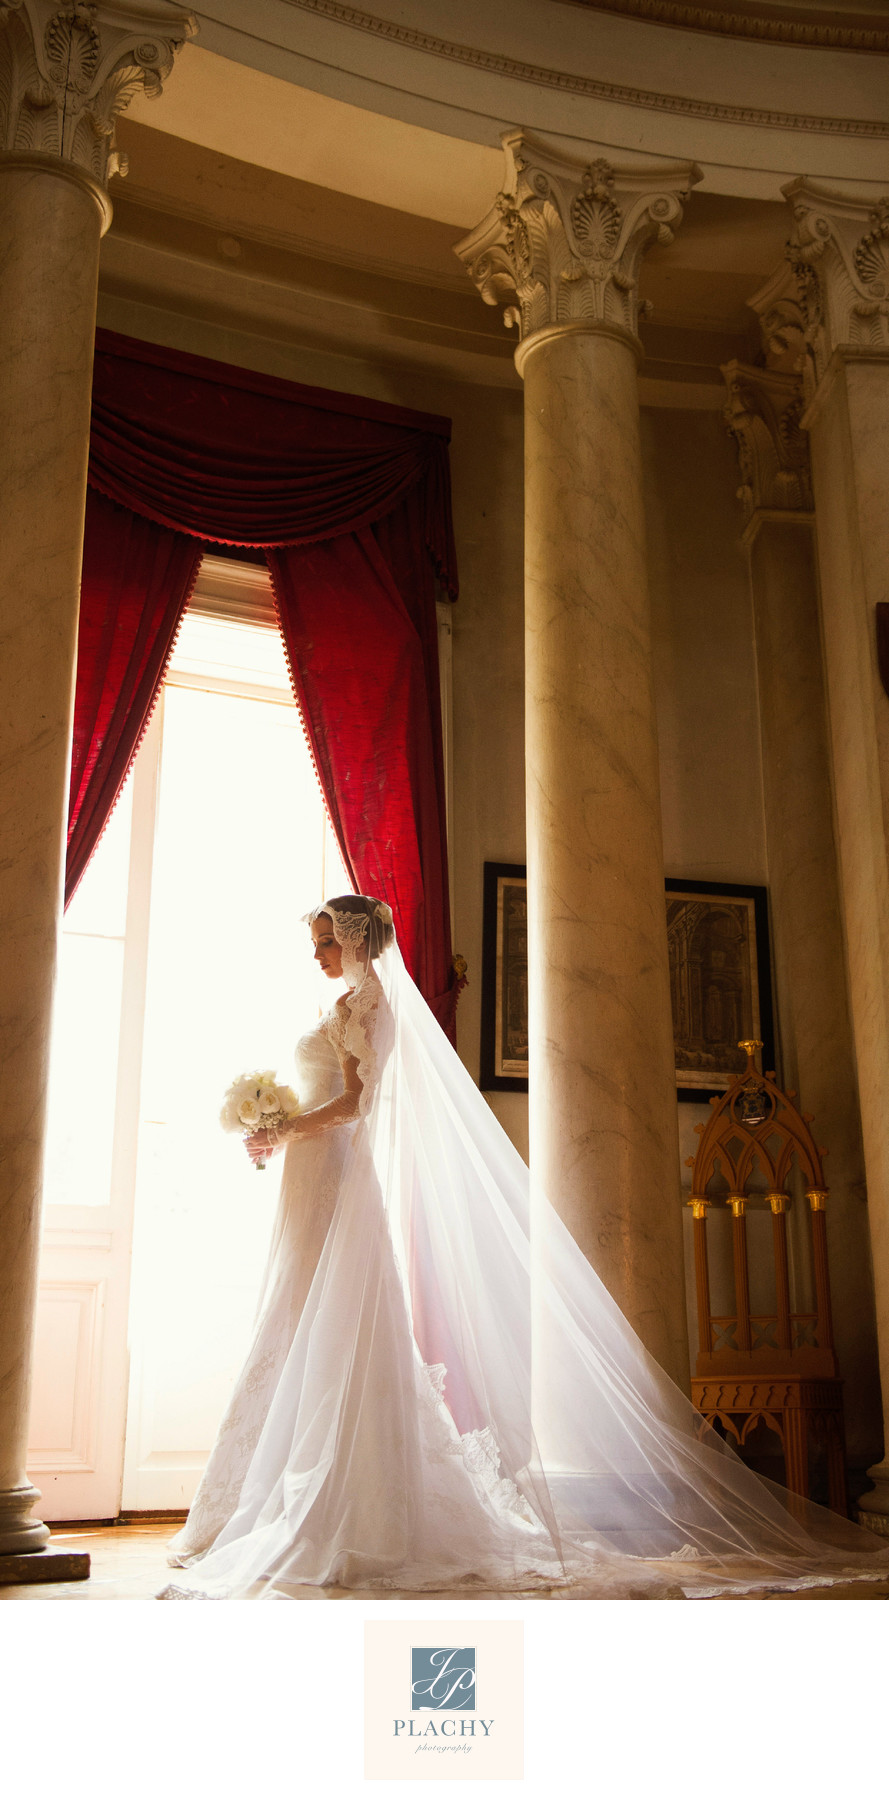 Wedding Image of the Bride in Imperial Hotel Vienna